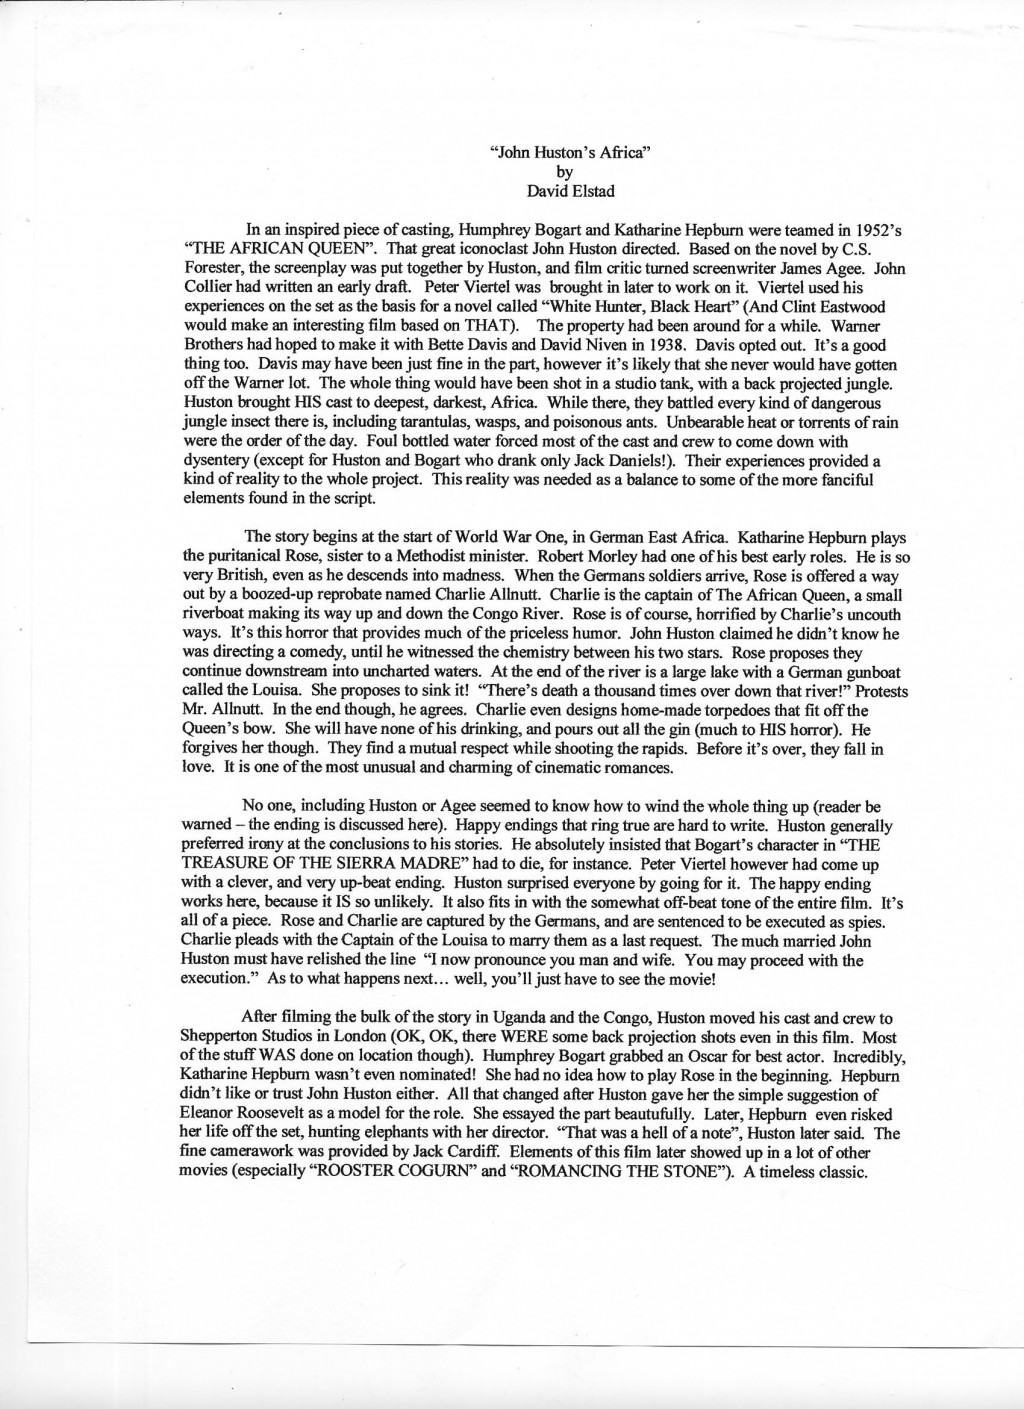 007 Character Essay Example Wondrous Introduction For Nhs Writing Prompts Large